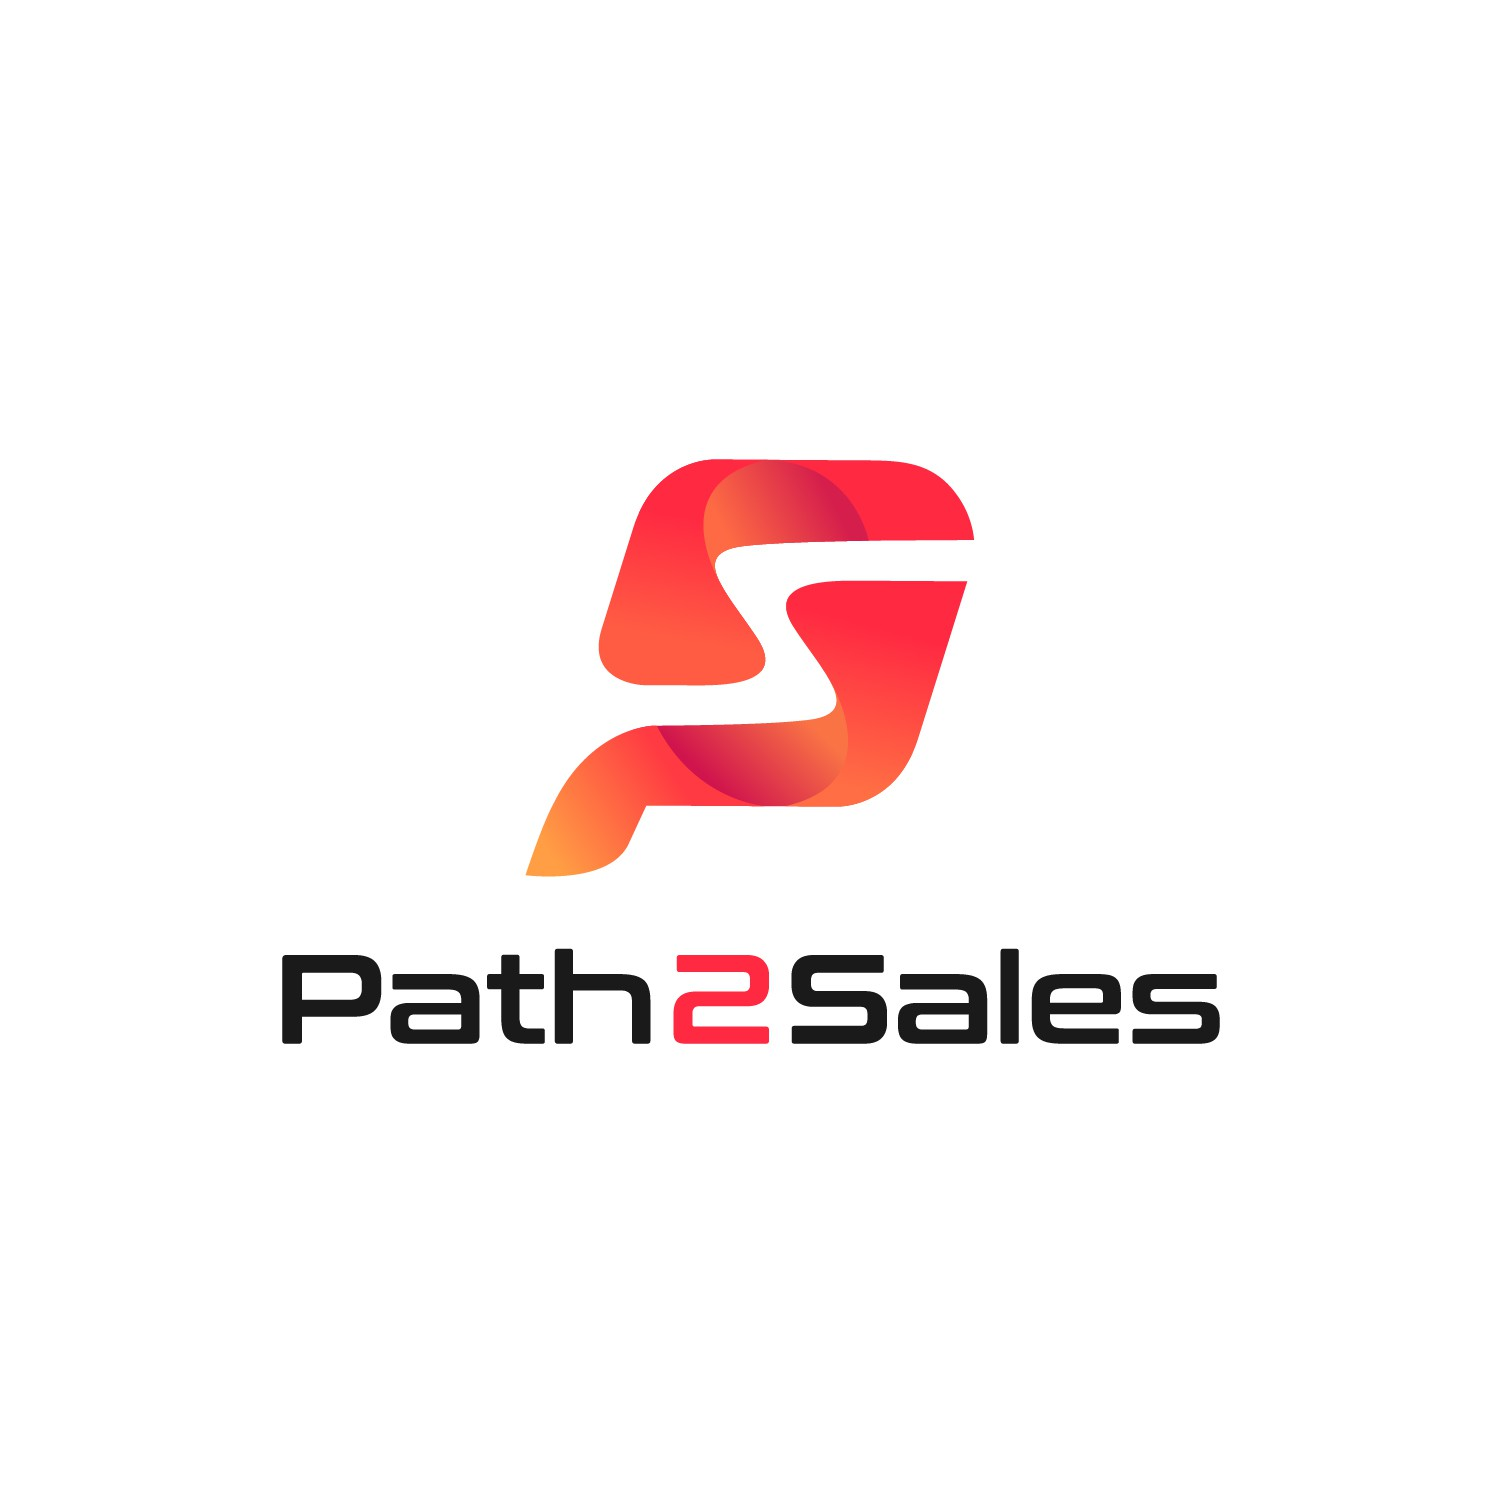 Create a logo showing an abstract progression through color, gradients and dimension for Path2Sales